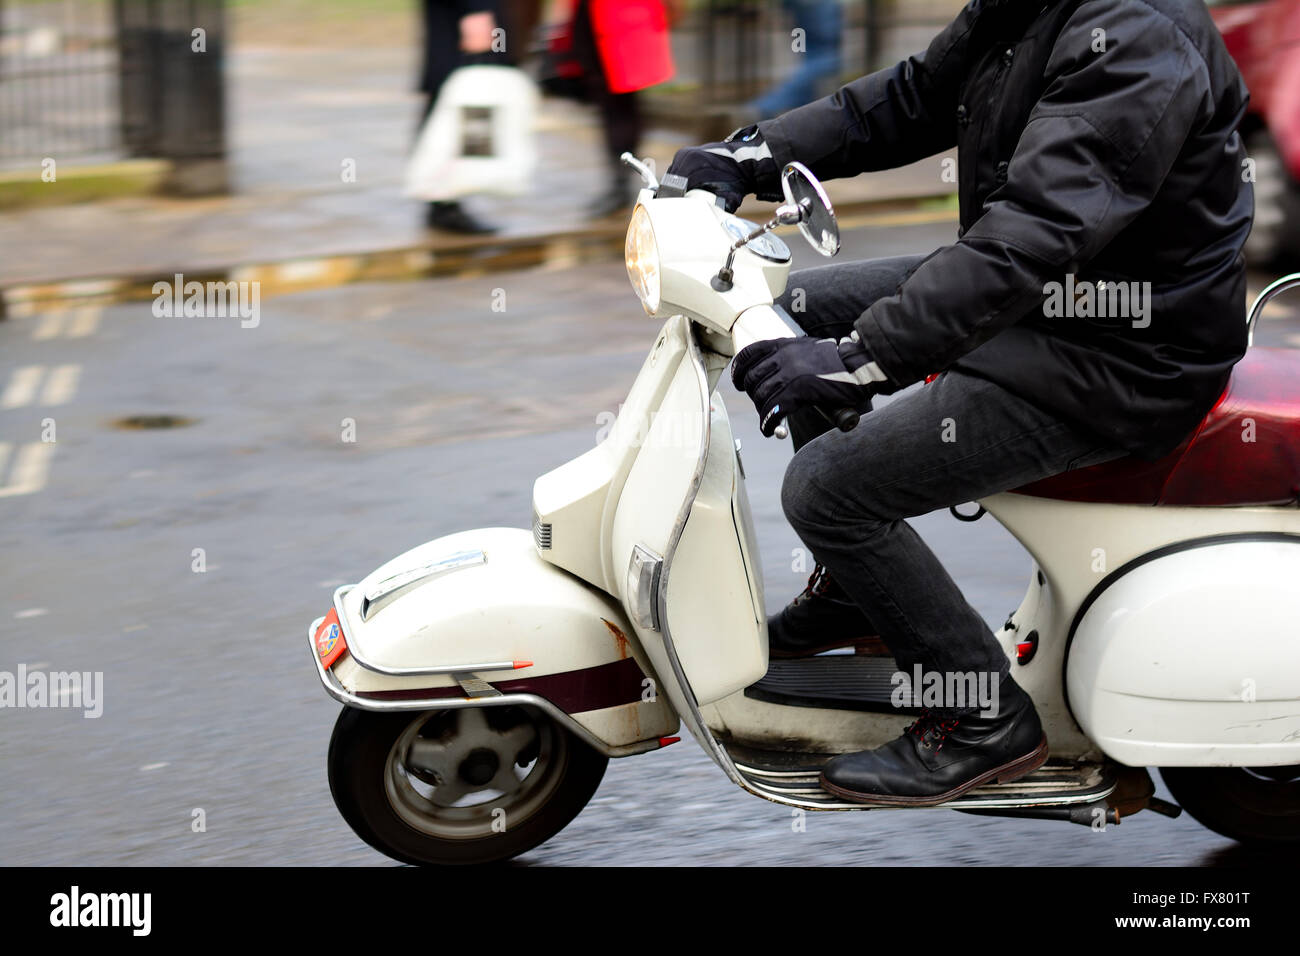 White Vespa scooter ridden by man during wet weather in London - Stock Image